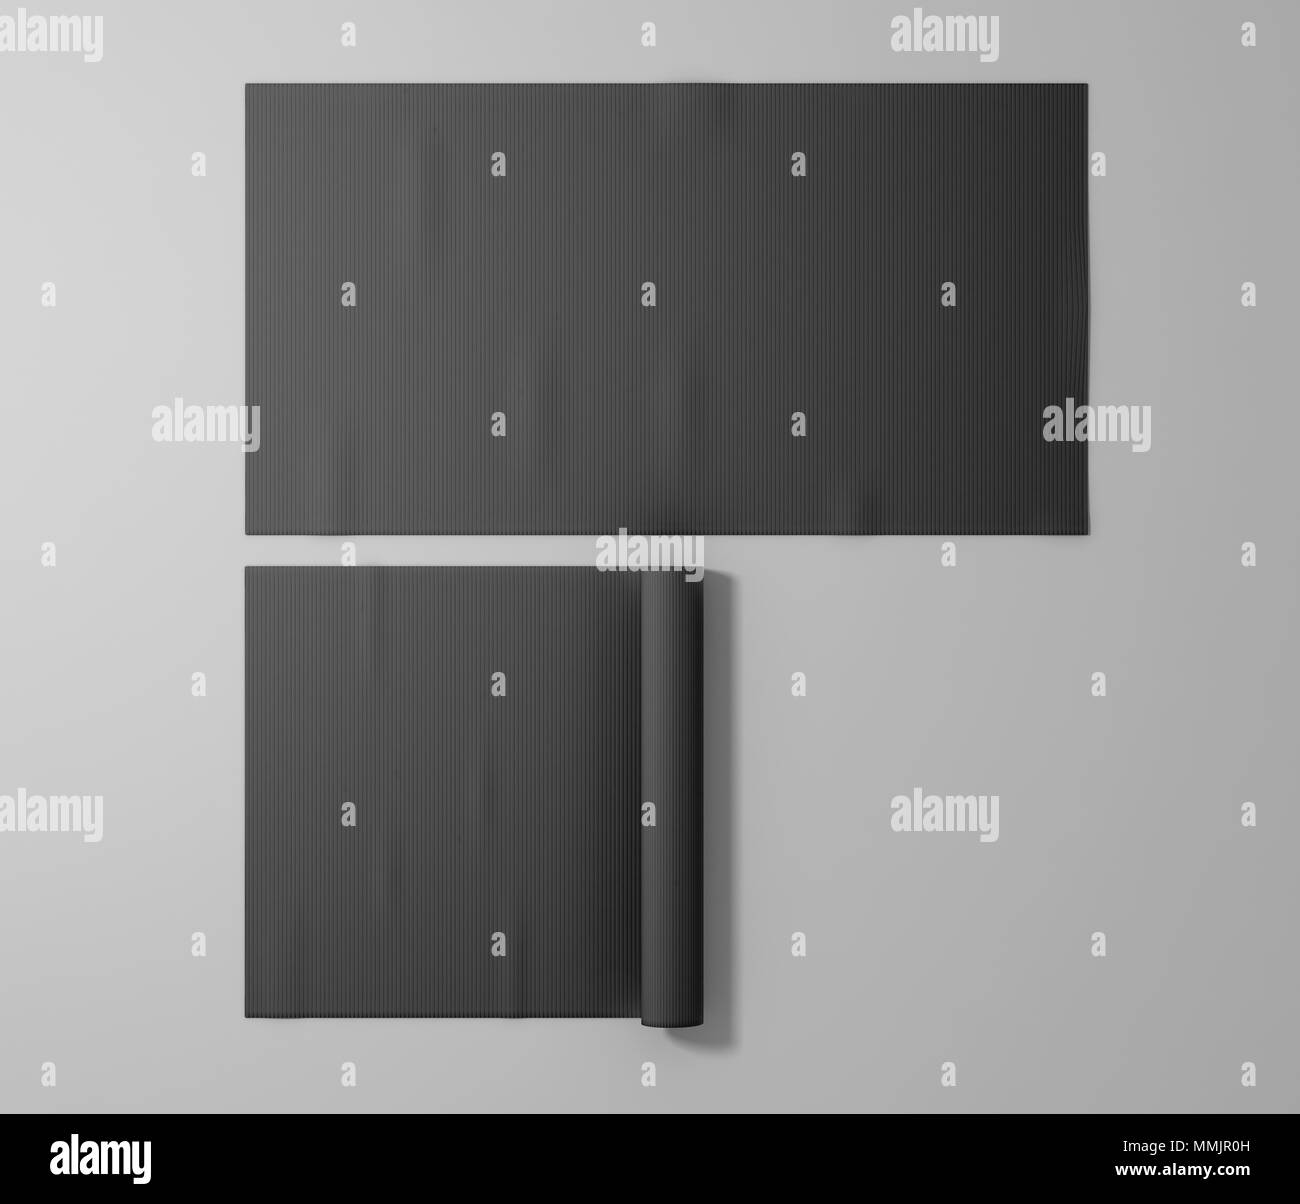 Yoga Mat Black And White Stock Photos & Images